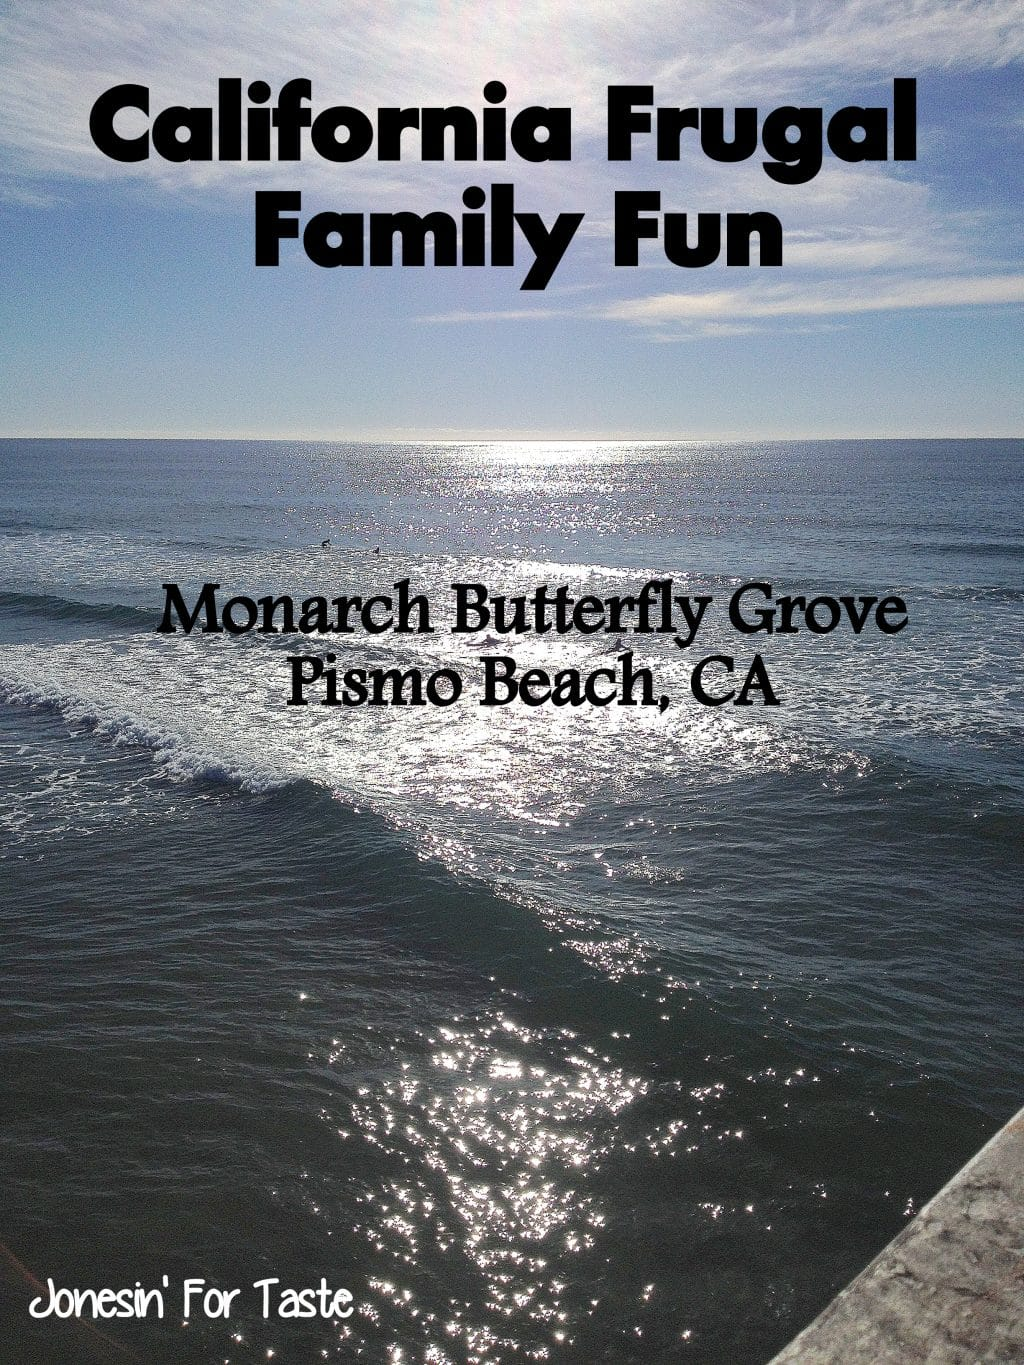 Having fun in California doesn't have to be expensive- visit Pismo Beach and see tens of thousands of Monarch Butterflies!